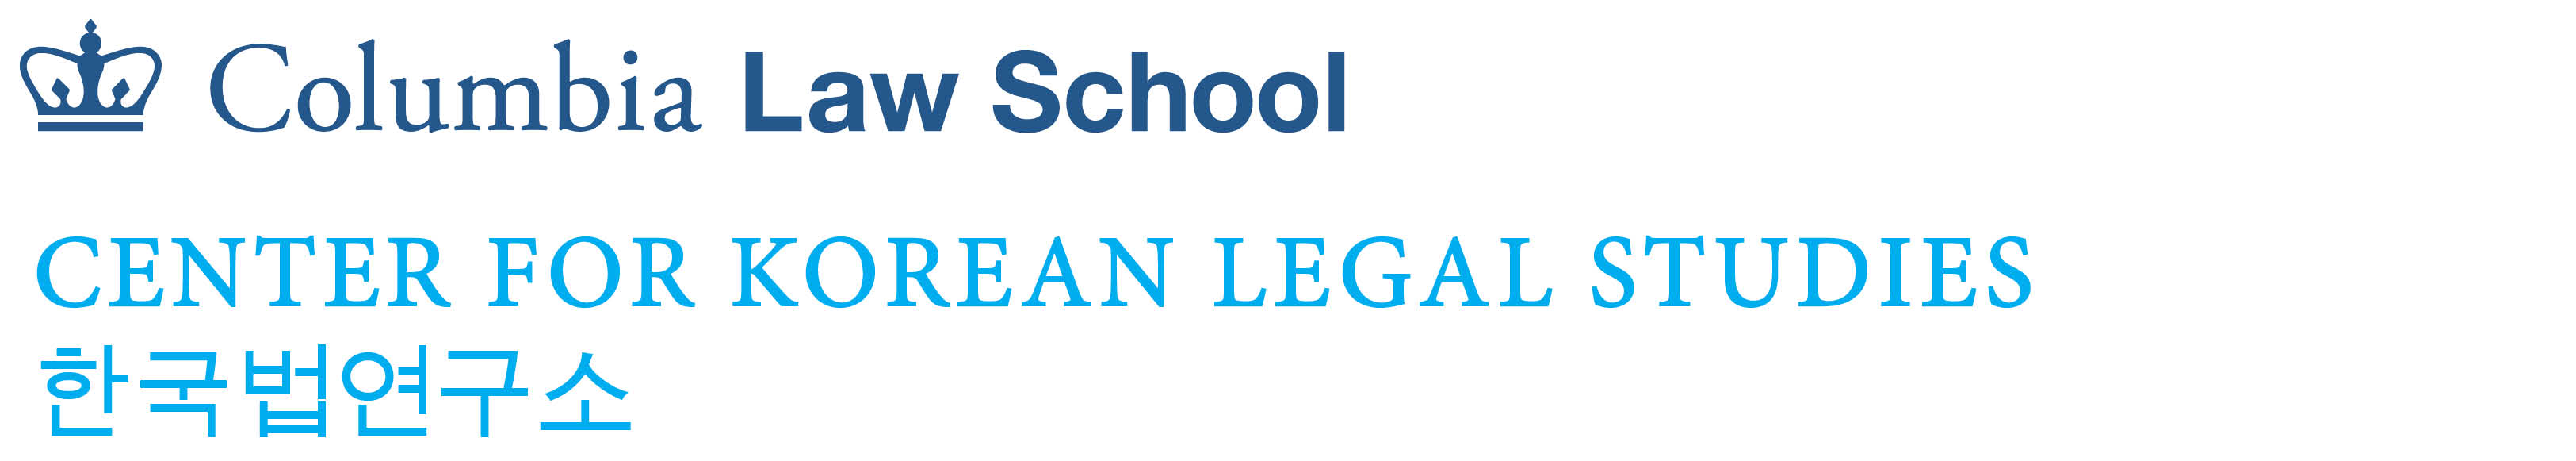 Korean Legal Studies logo